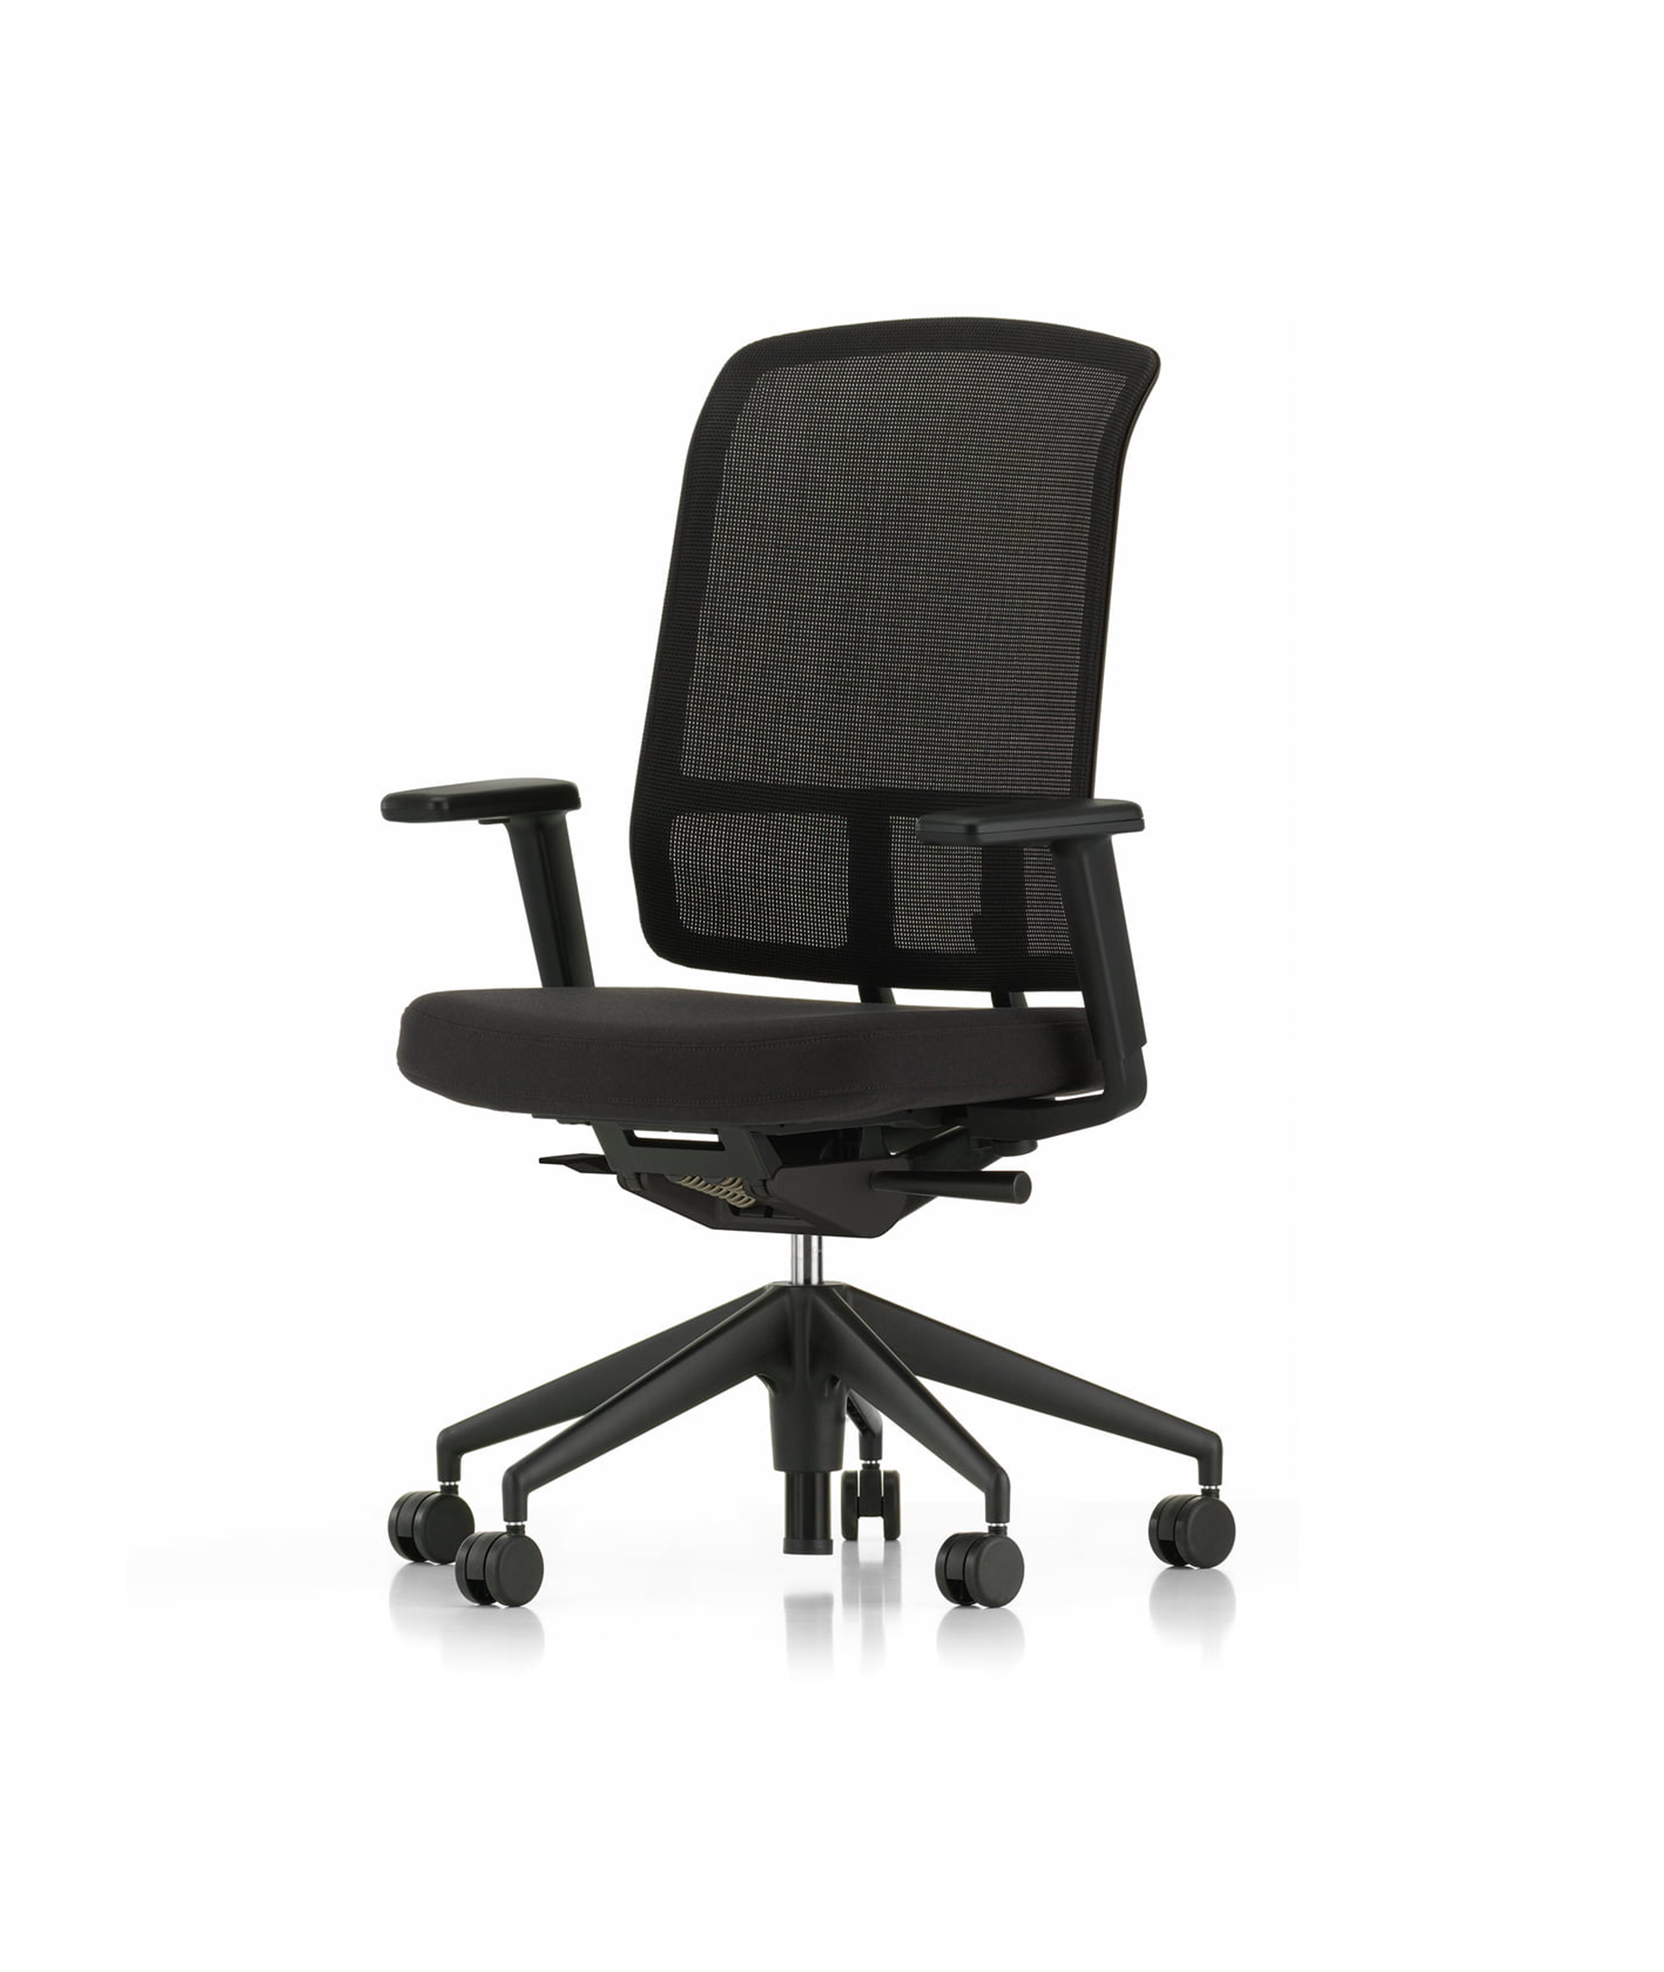 CAD.AM CHAIR NEGRE